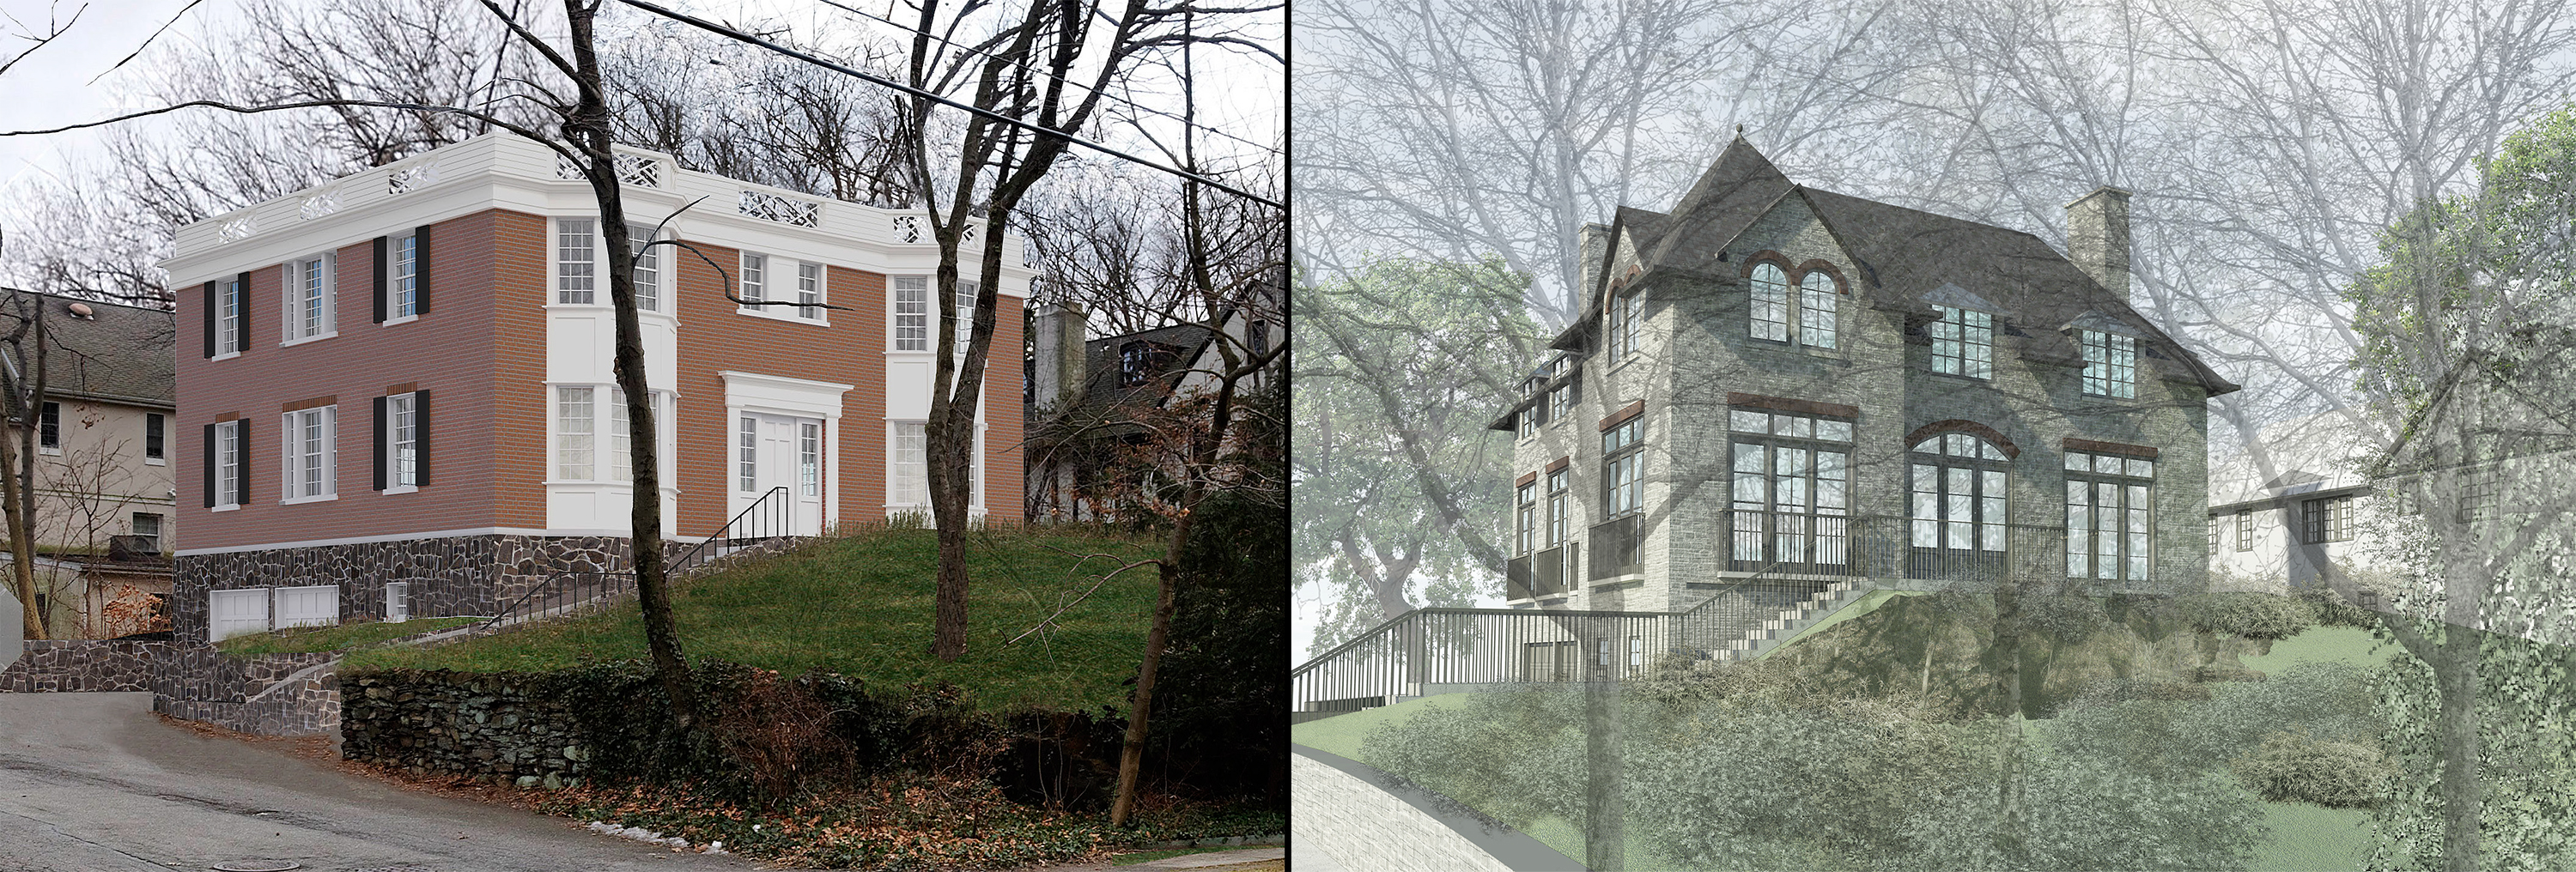 Previous and revised proposals for new house no. 3, as viewed from Fieldston Road